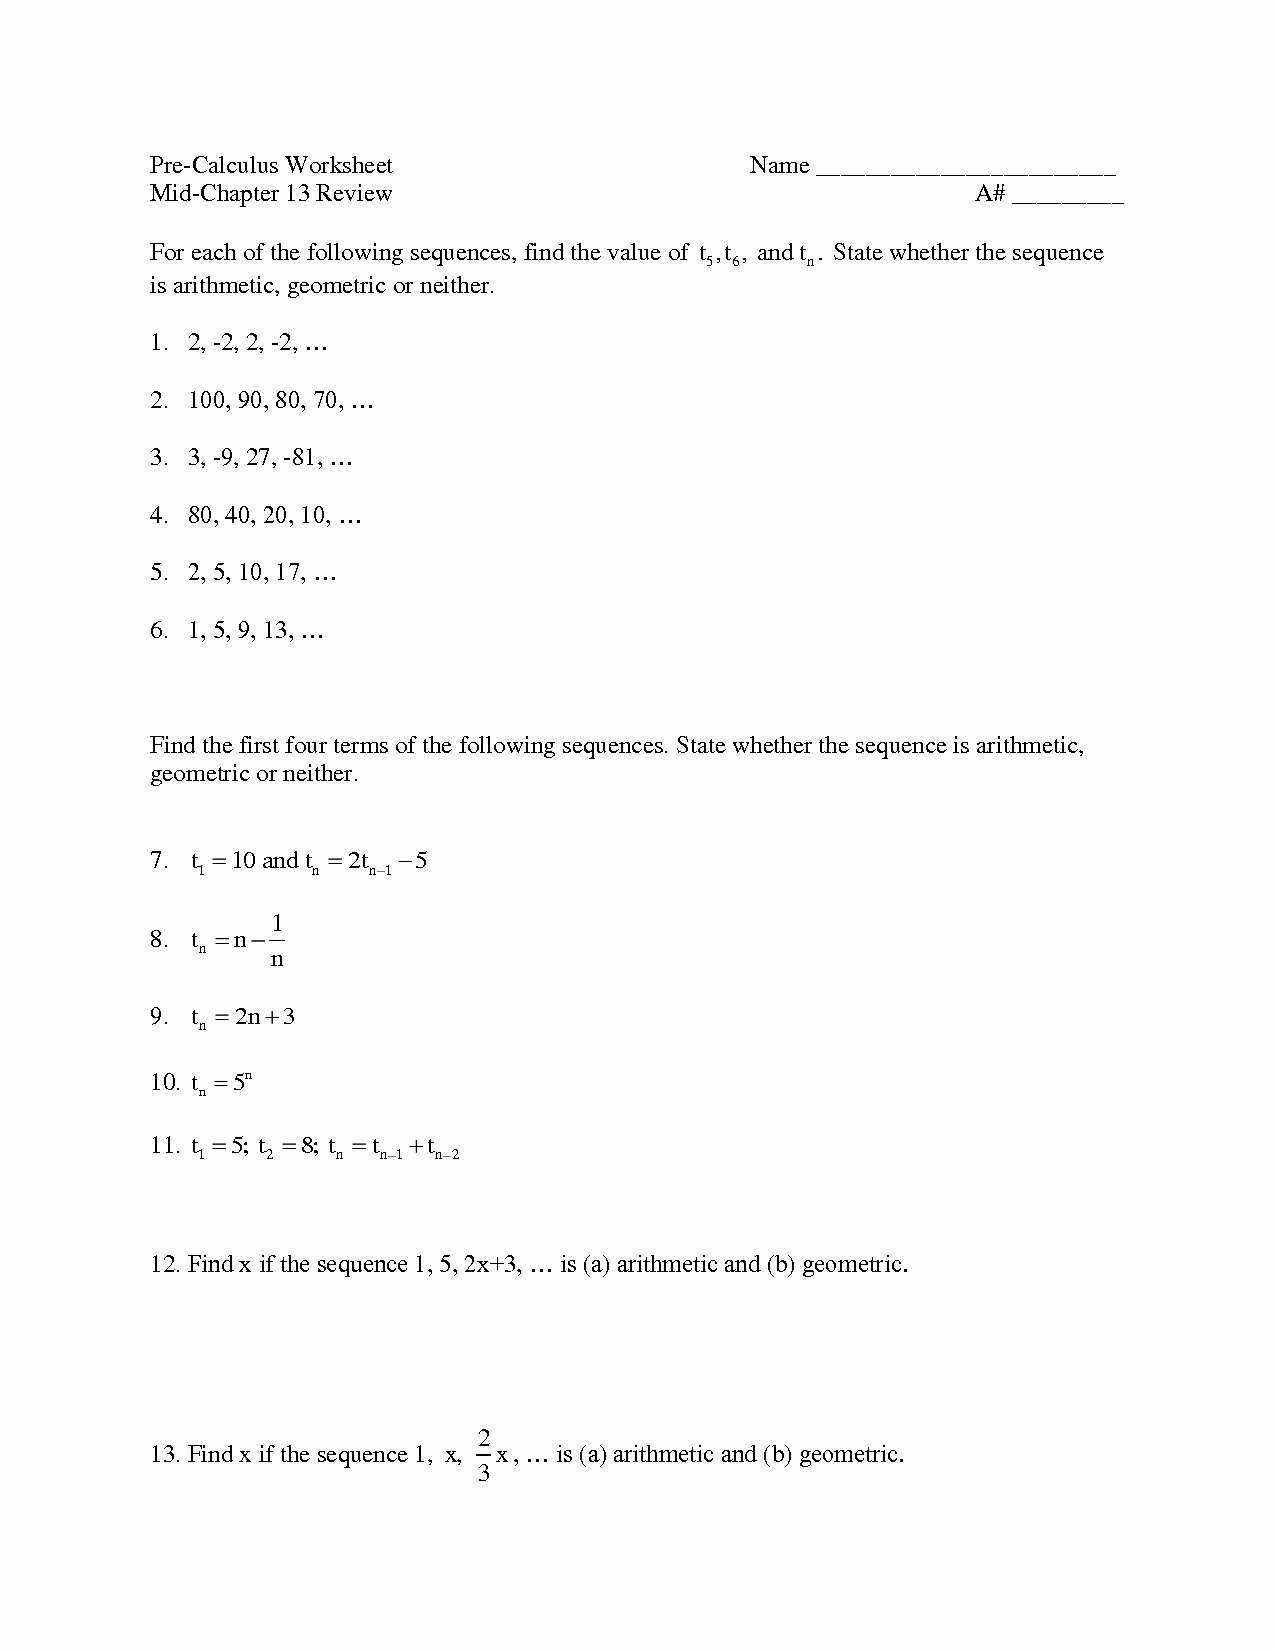 Arithmetic and Geometric Sequences Worksheet Awesome 51 Arithmetic Sequences and Series Worksheet Geometric